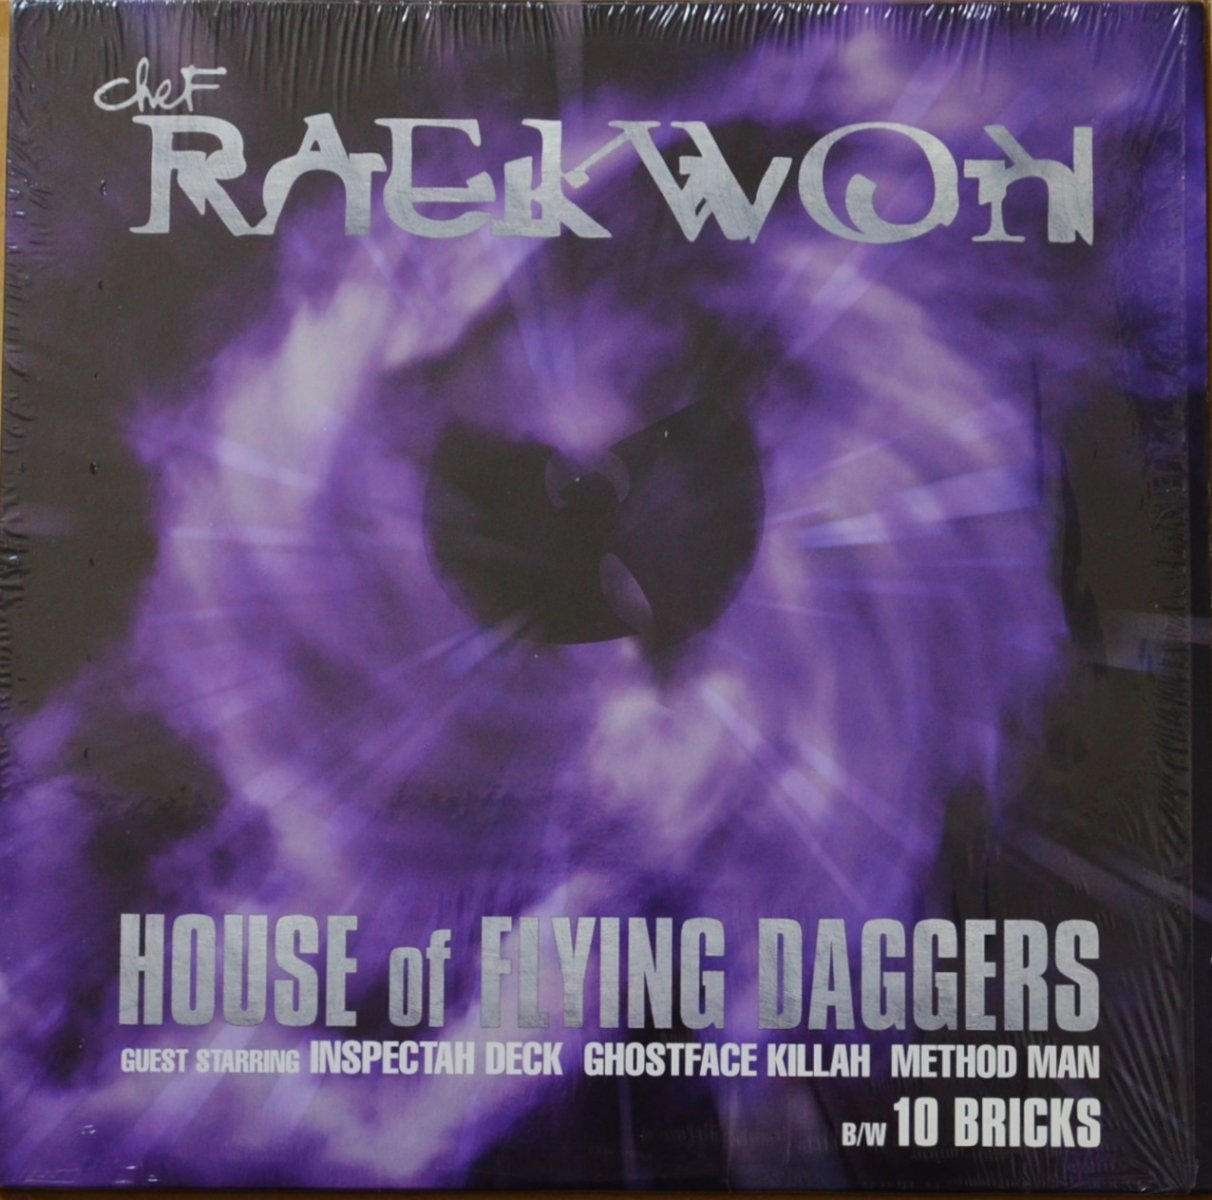 CHEF RAEKWON / HOUSE OF FLYING DAGGERS / 10 BRICKS (PROD BY J DILLA) (12